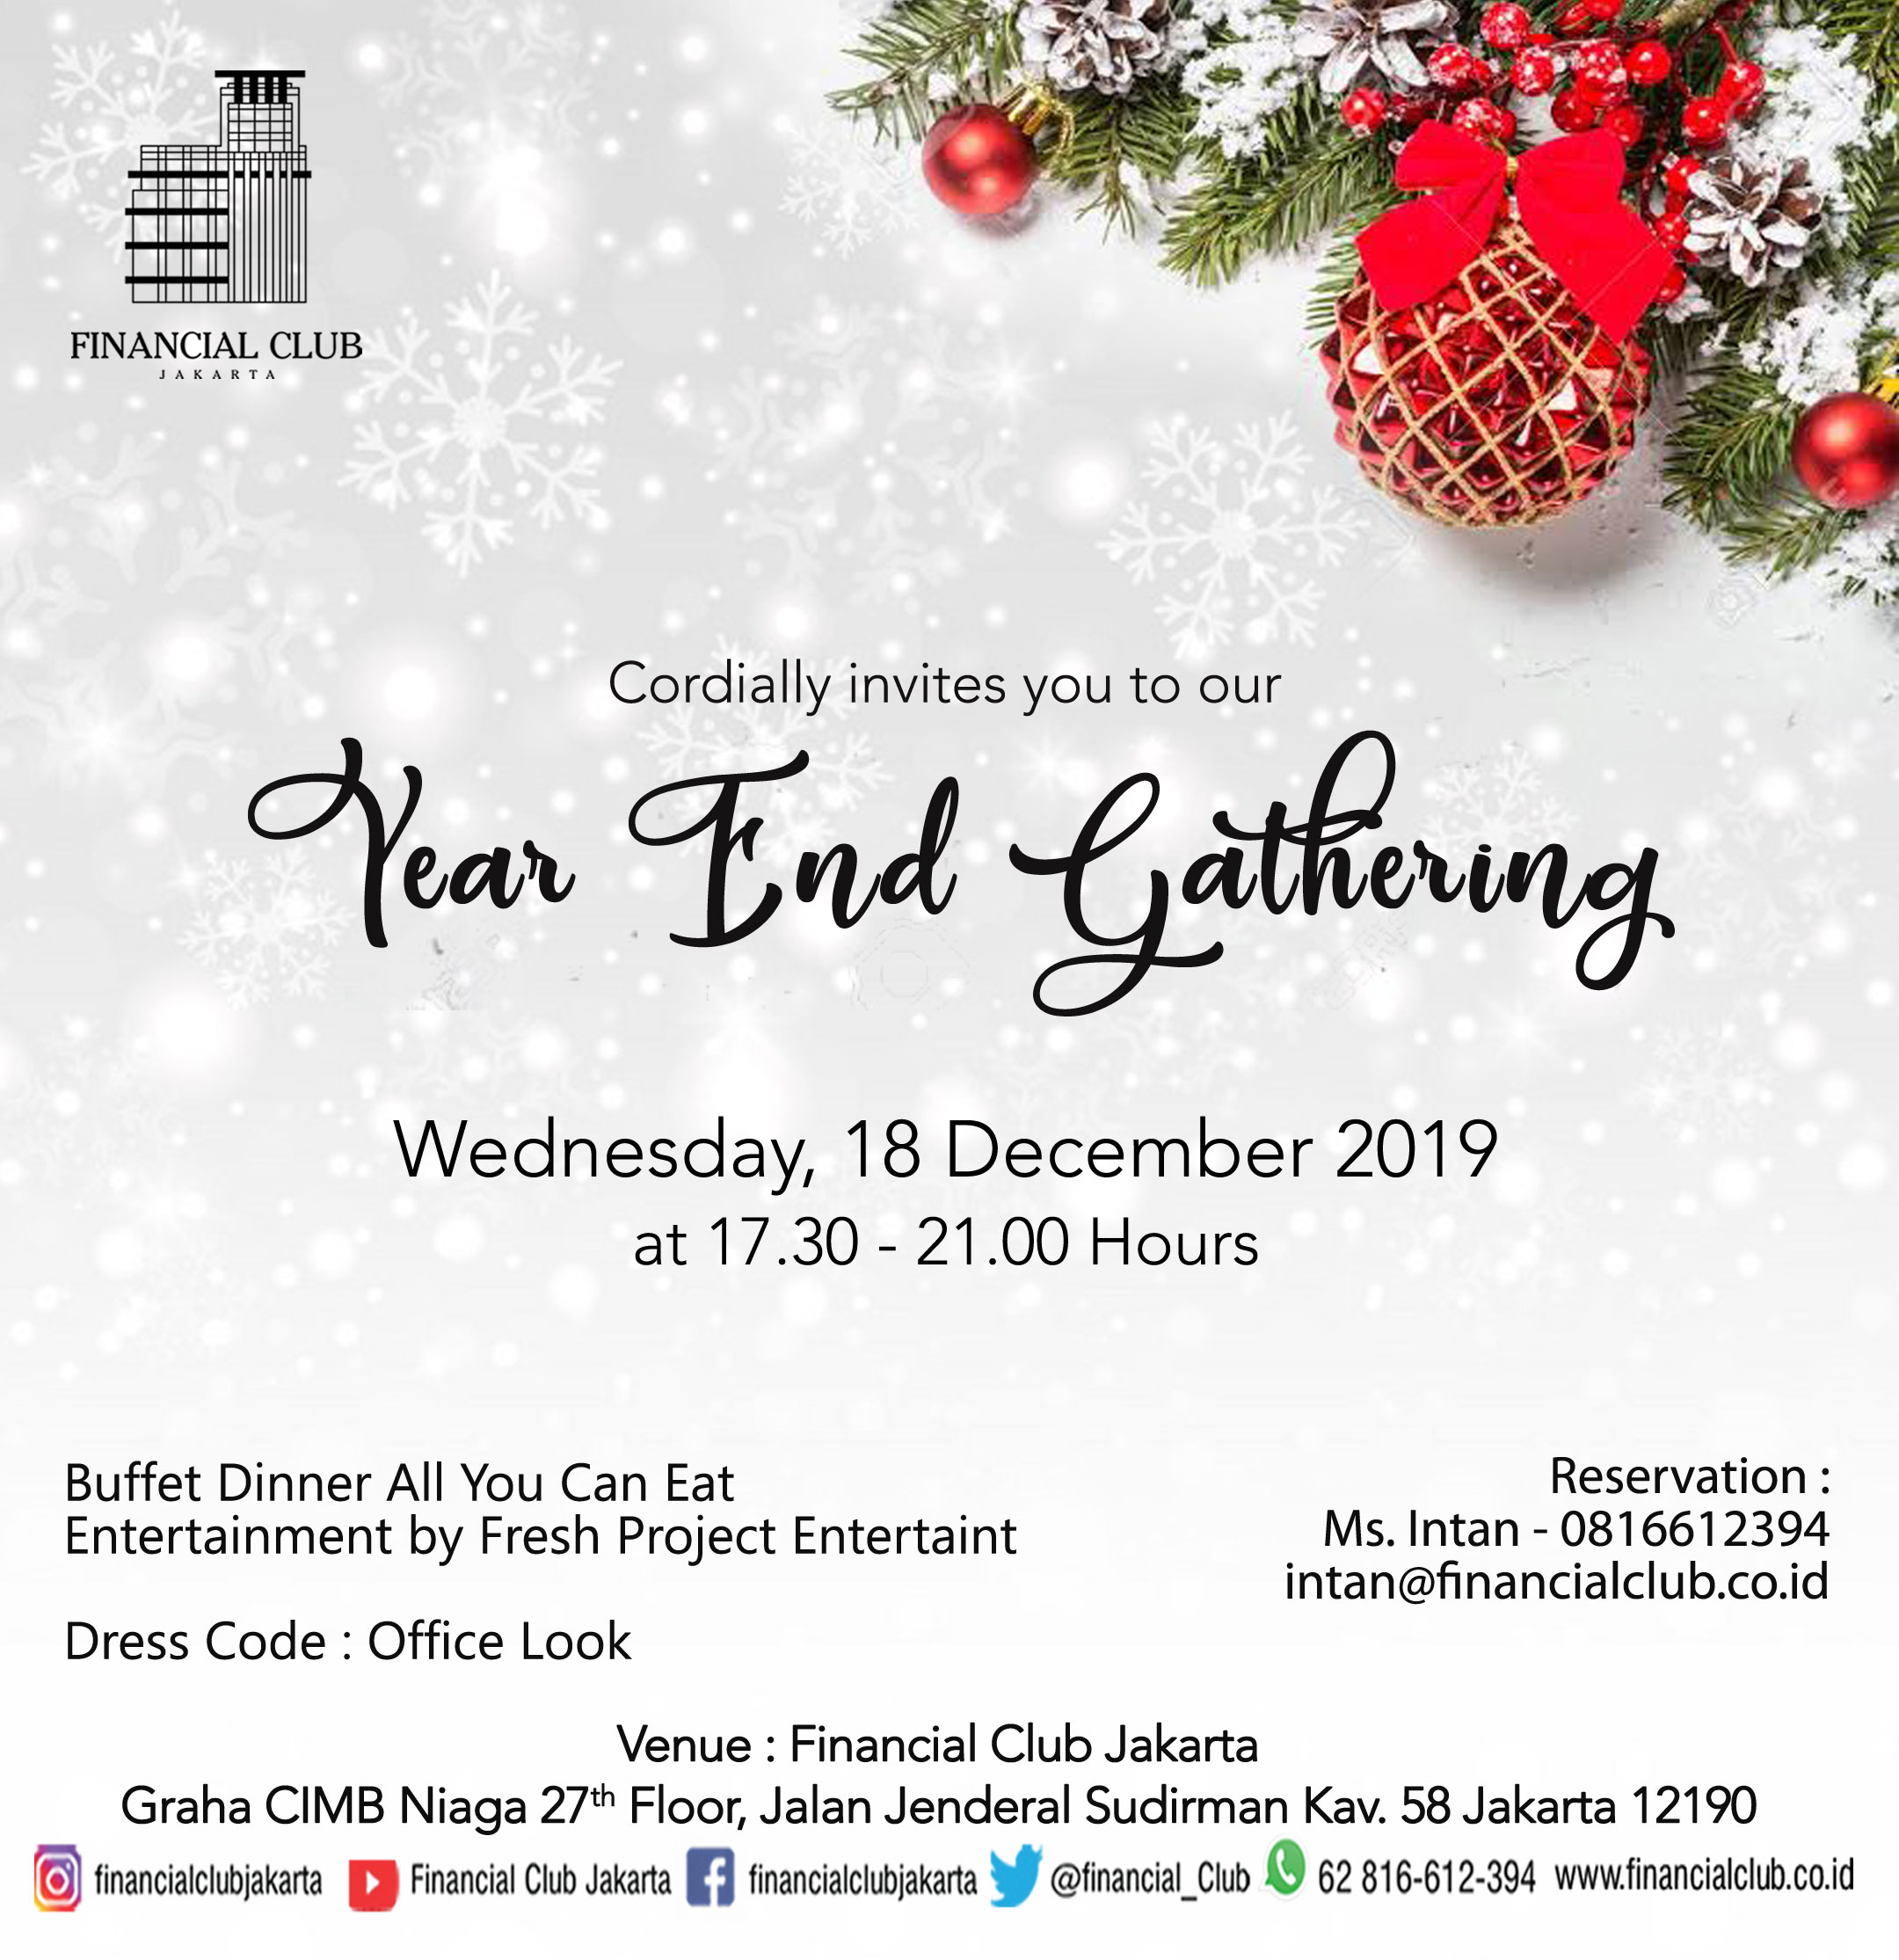 Year End Gathering 2019 at Financial Club Jakarta